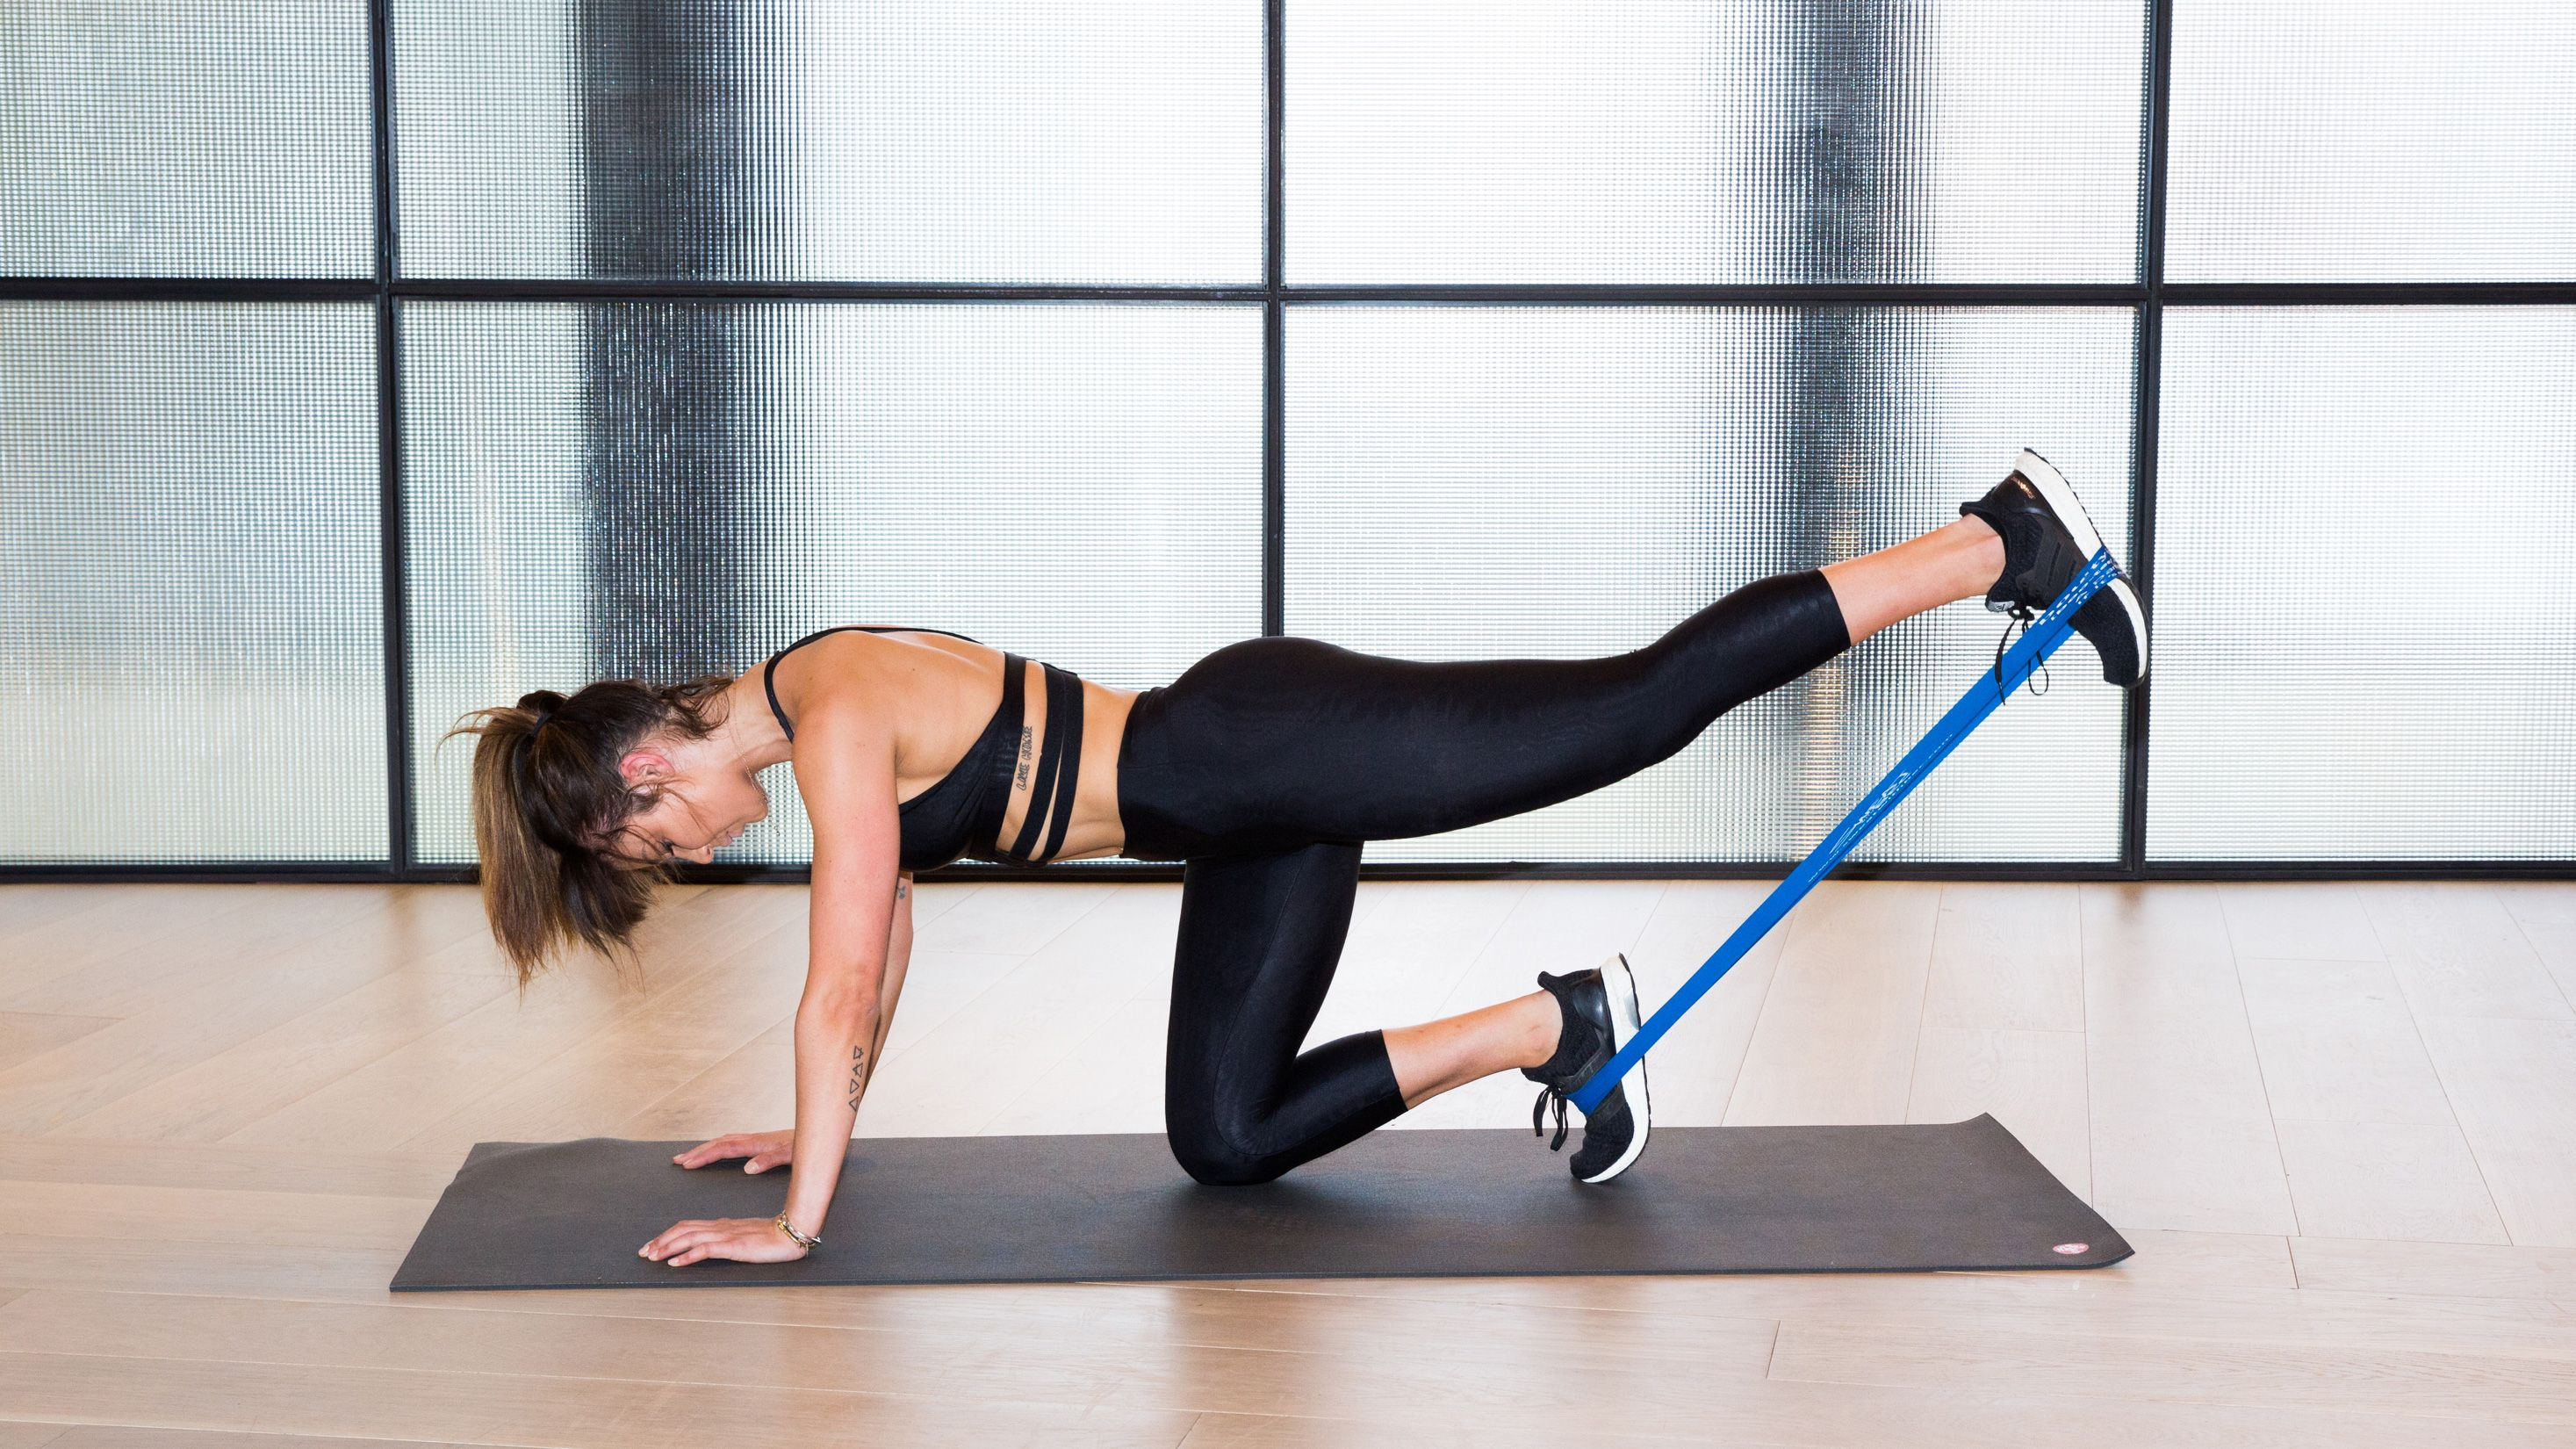 Thanks to This Resistance Band, You Can Work Out Anywhere